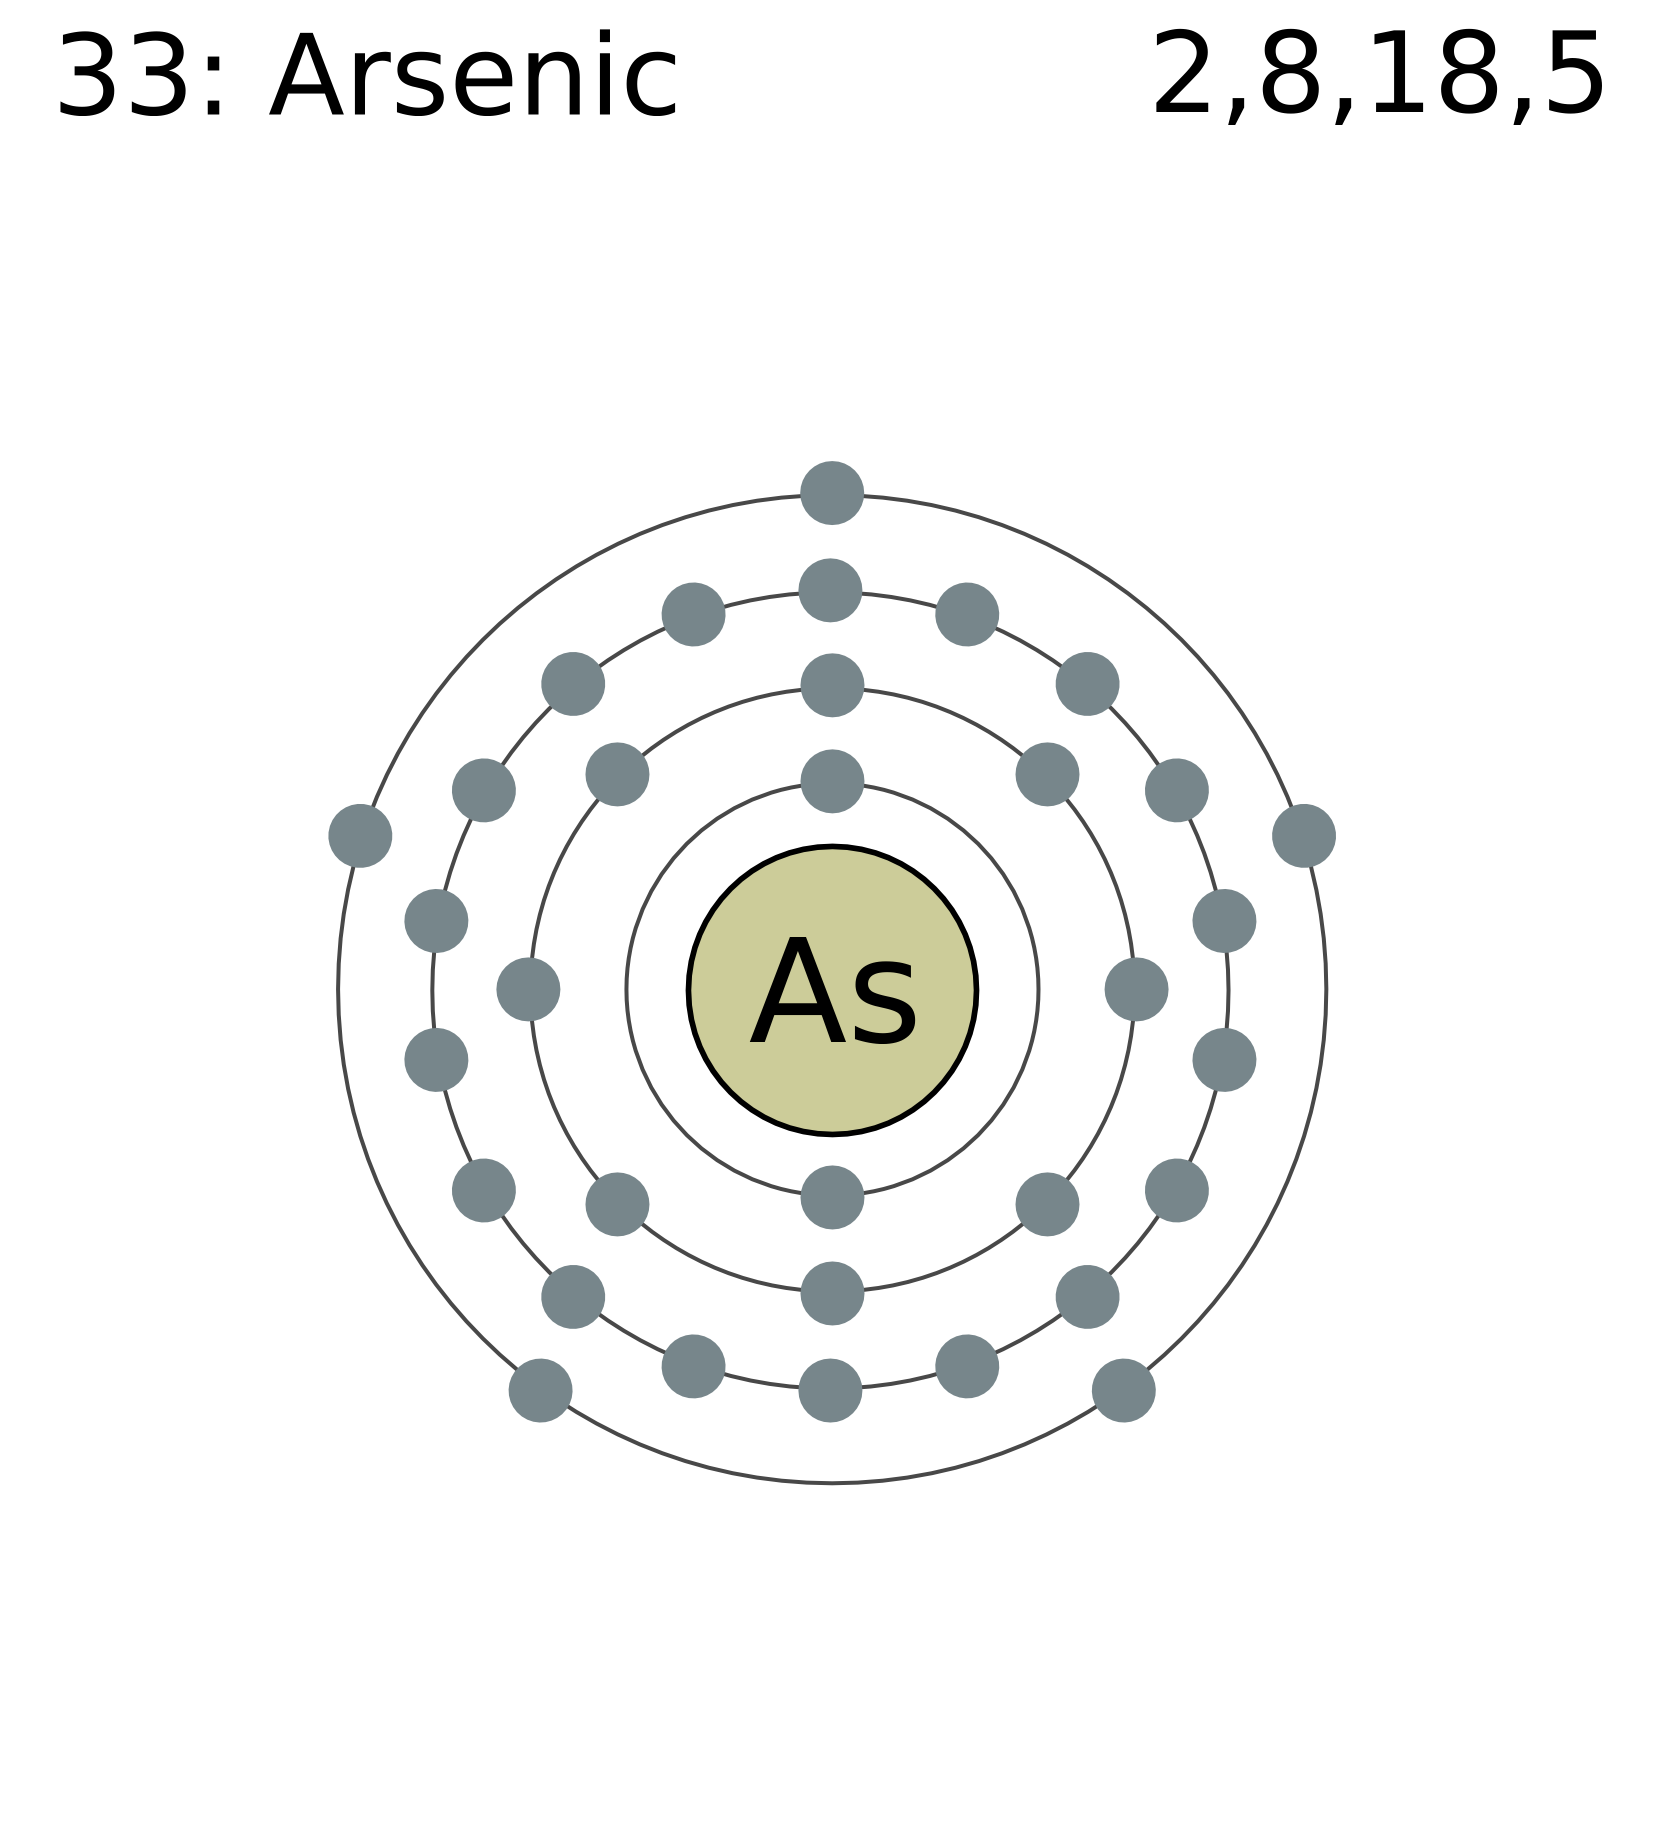 File:Electron_shell_033_arsenic on Periodic Table Valence Electrons